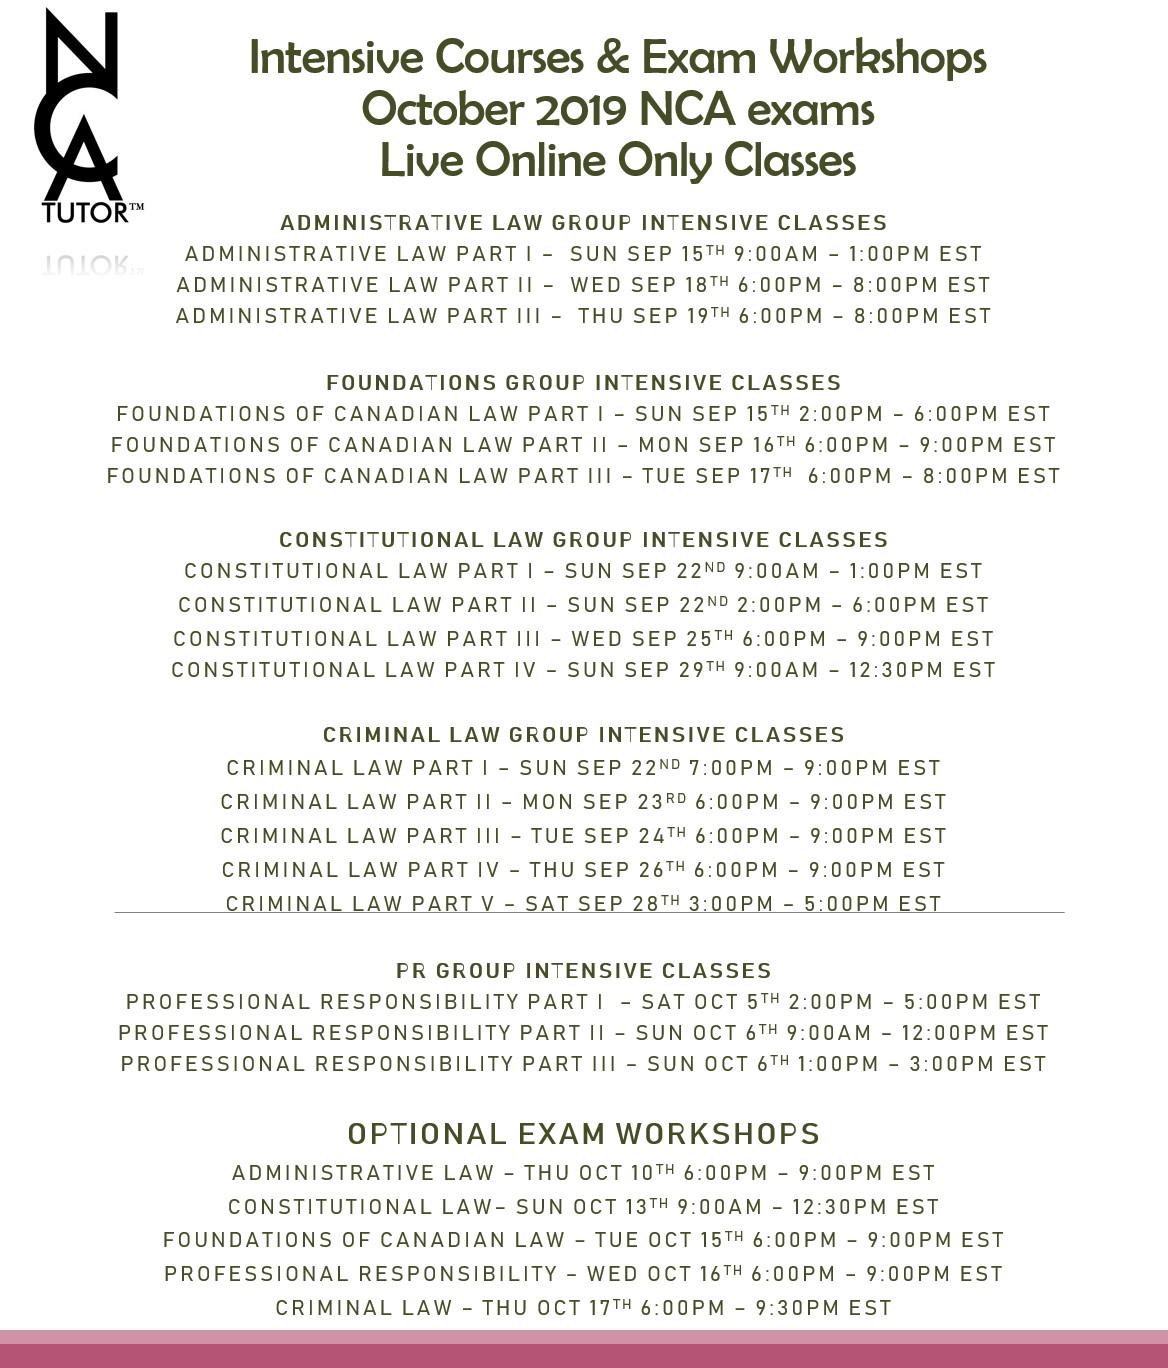 October 2019 NCA Exams - Course Schedule - NCA Tutor™